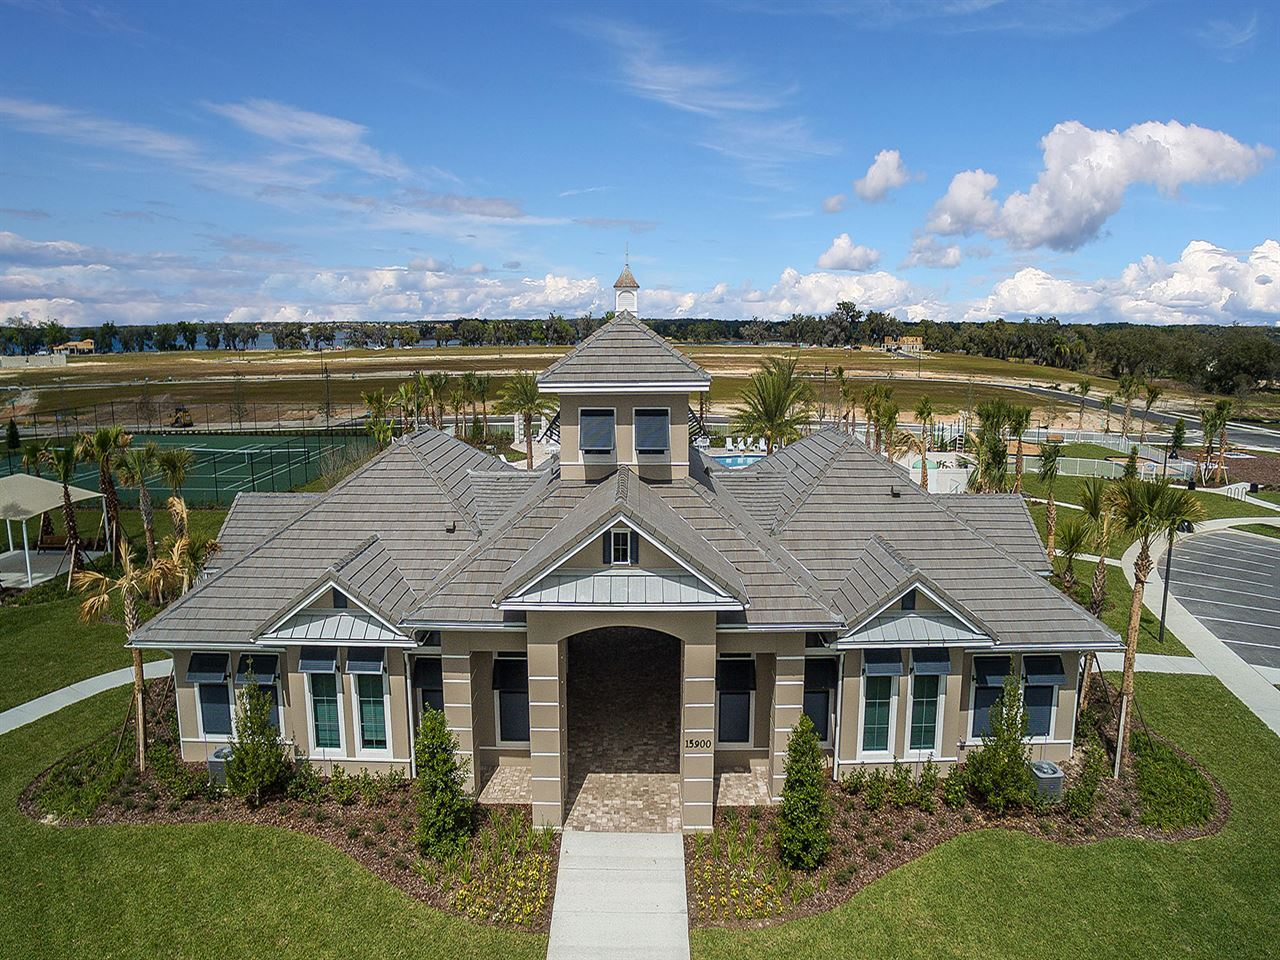 New Homes In Winter Garden FL By Ryland Homes Presented By The Rucco